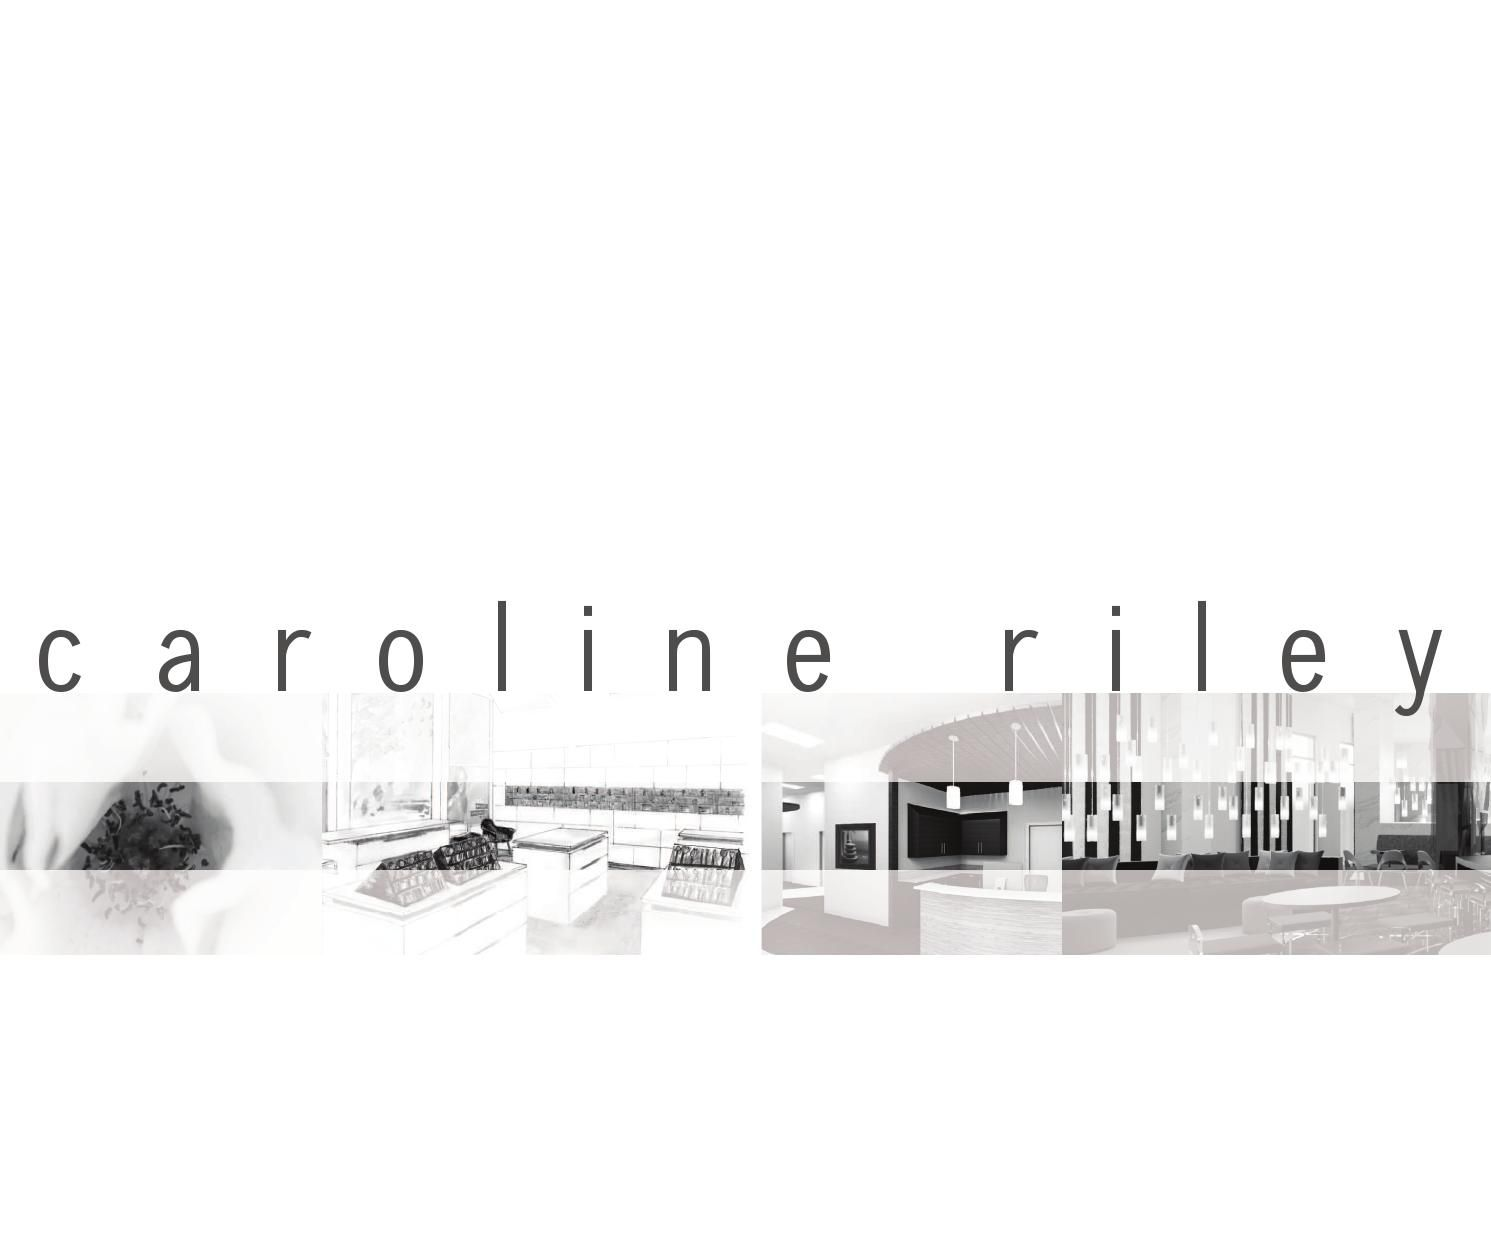 Caroline riley interior design portfolio inspiratie for Innenarchitektur portfolio